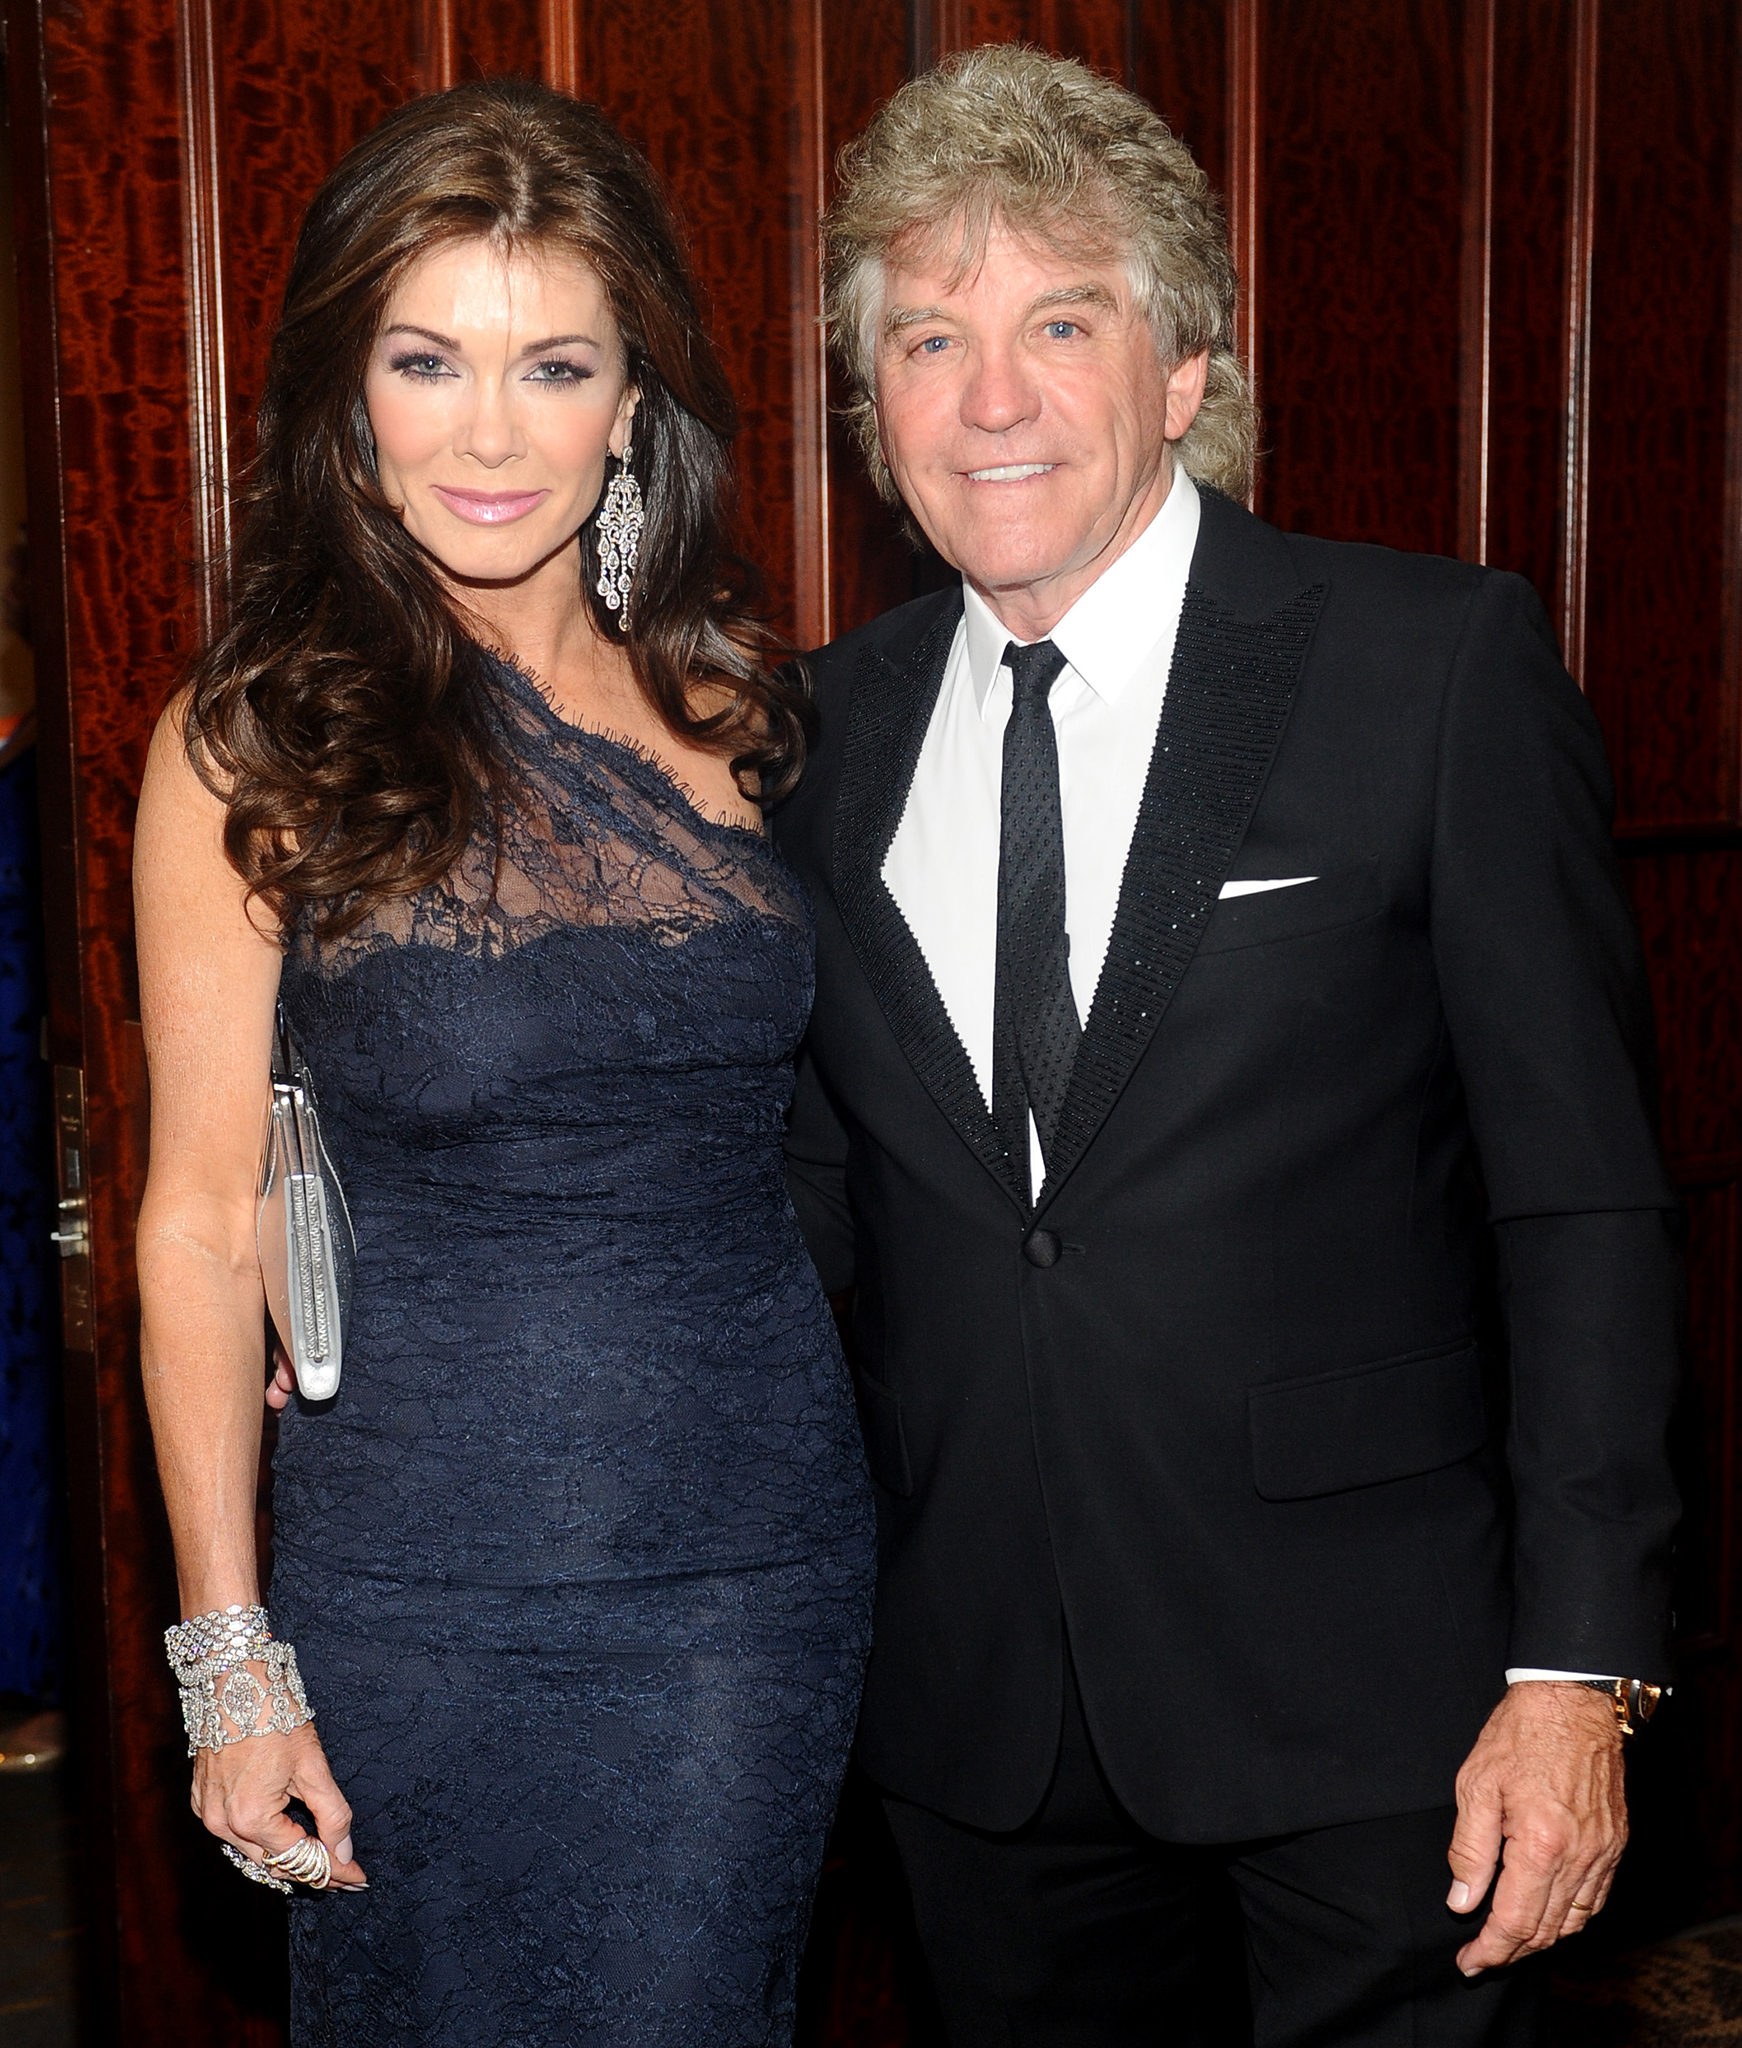 Lisa Vanderpump and Ken Todd (Getty Images)